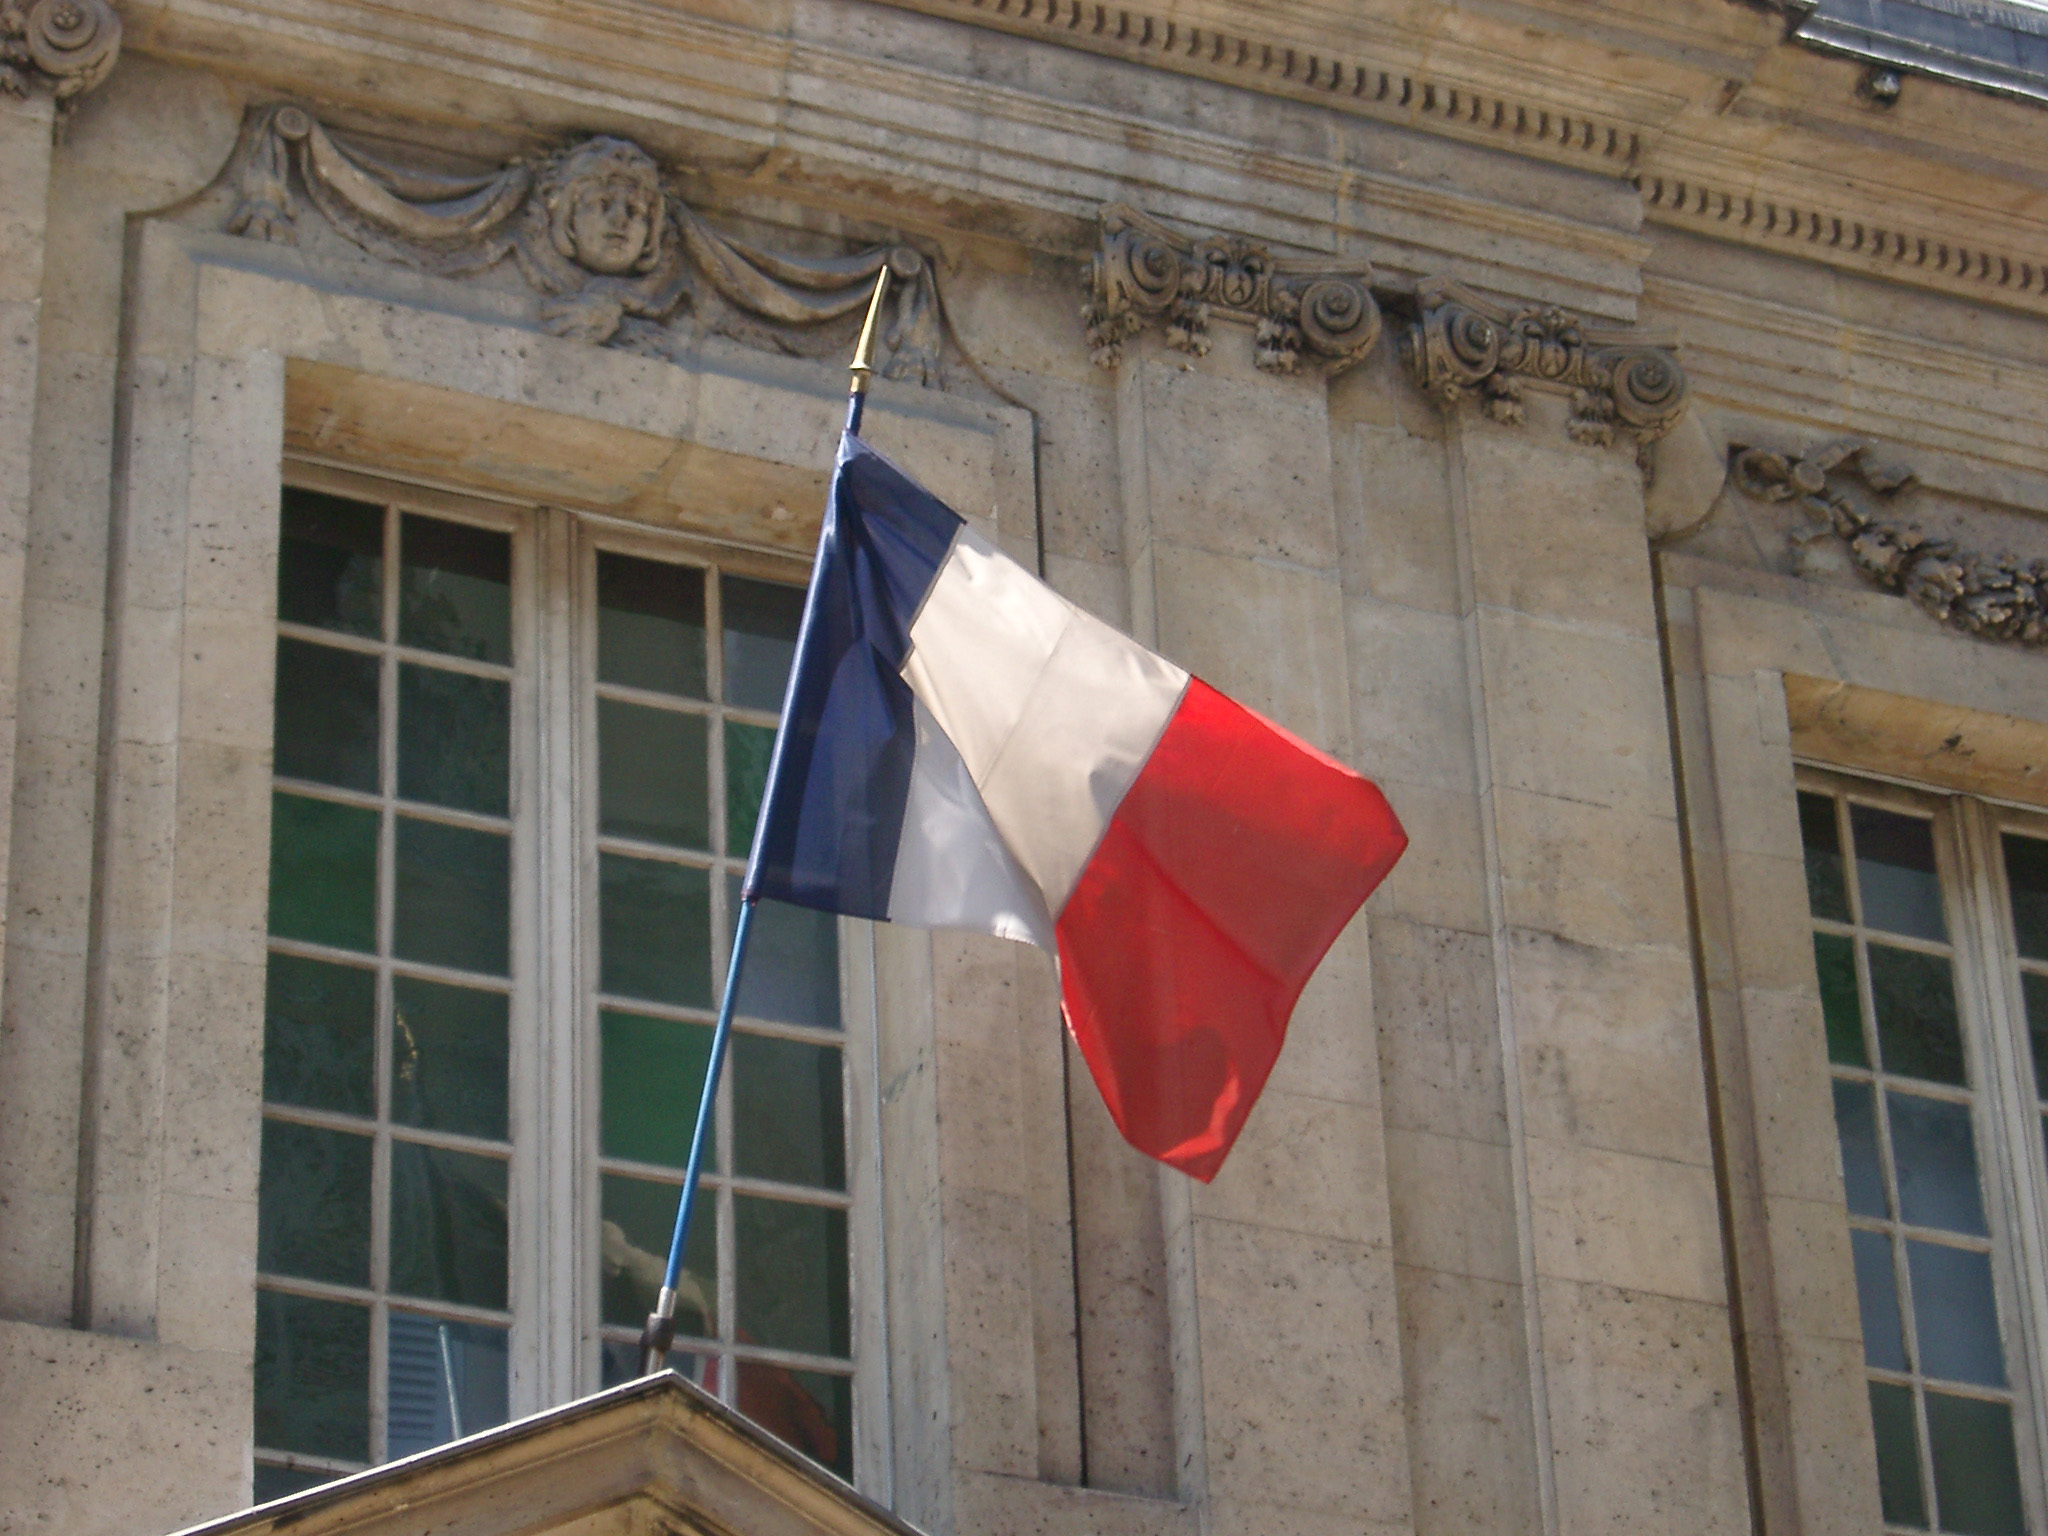 The Tricolor French National Flag in red, white and blue flying from a flagpole on the exterior of an old stone building